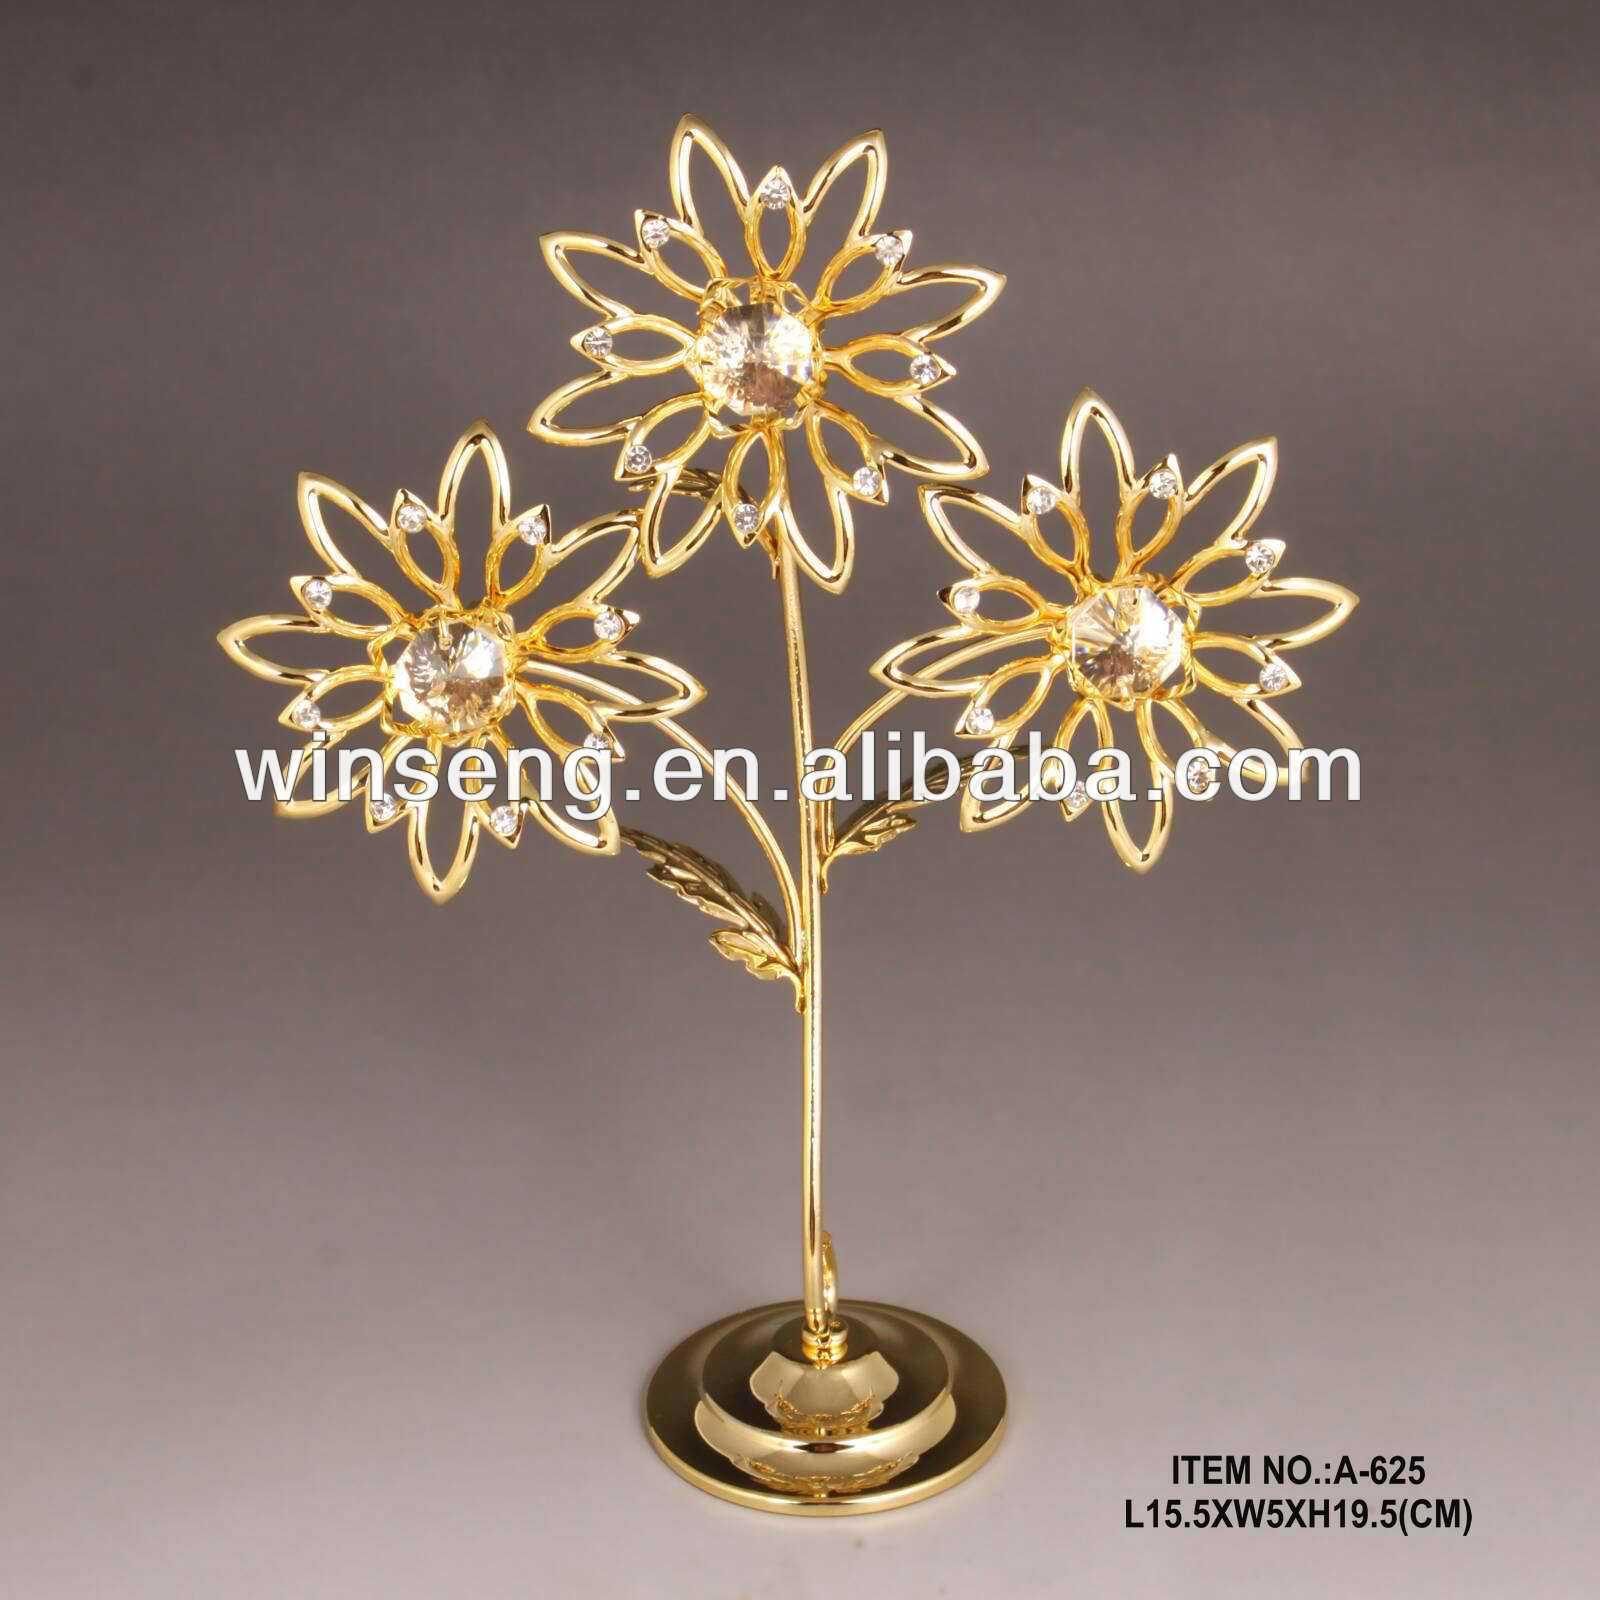 High Quality 24K gold plated artifical flower tree with crystals from swarovski